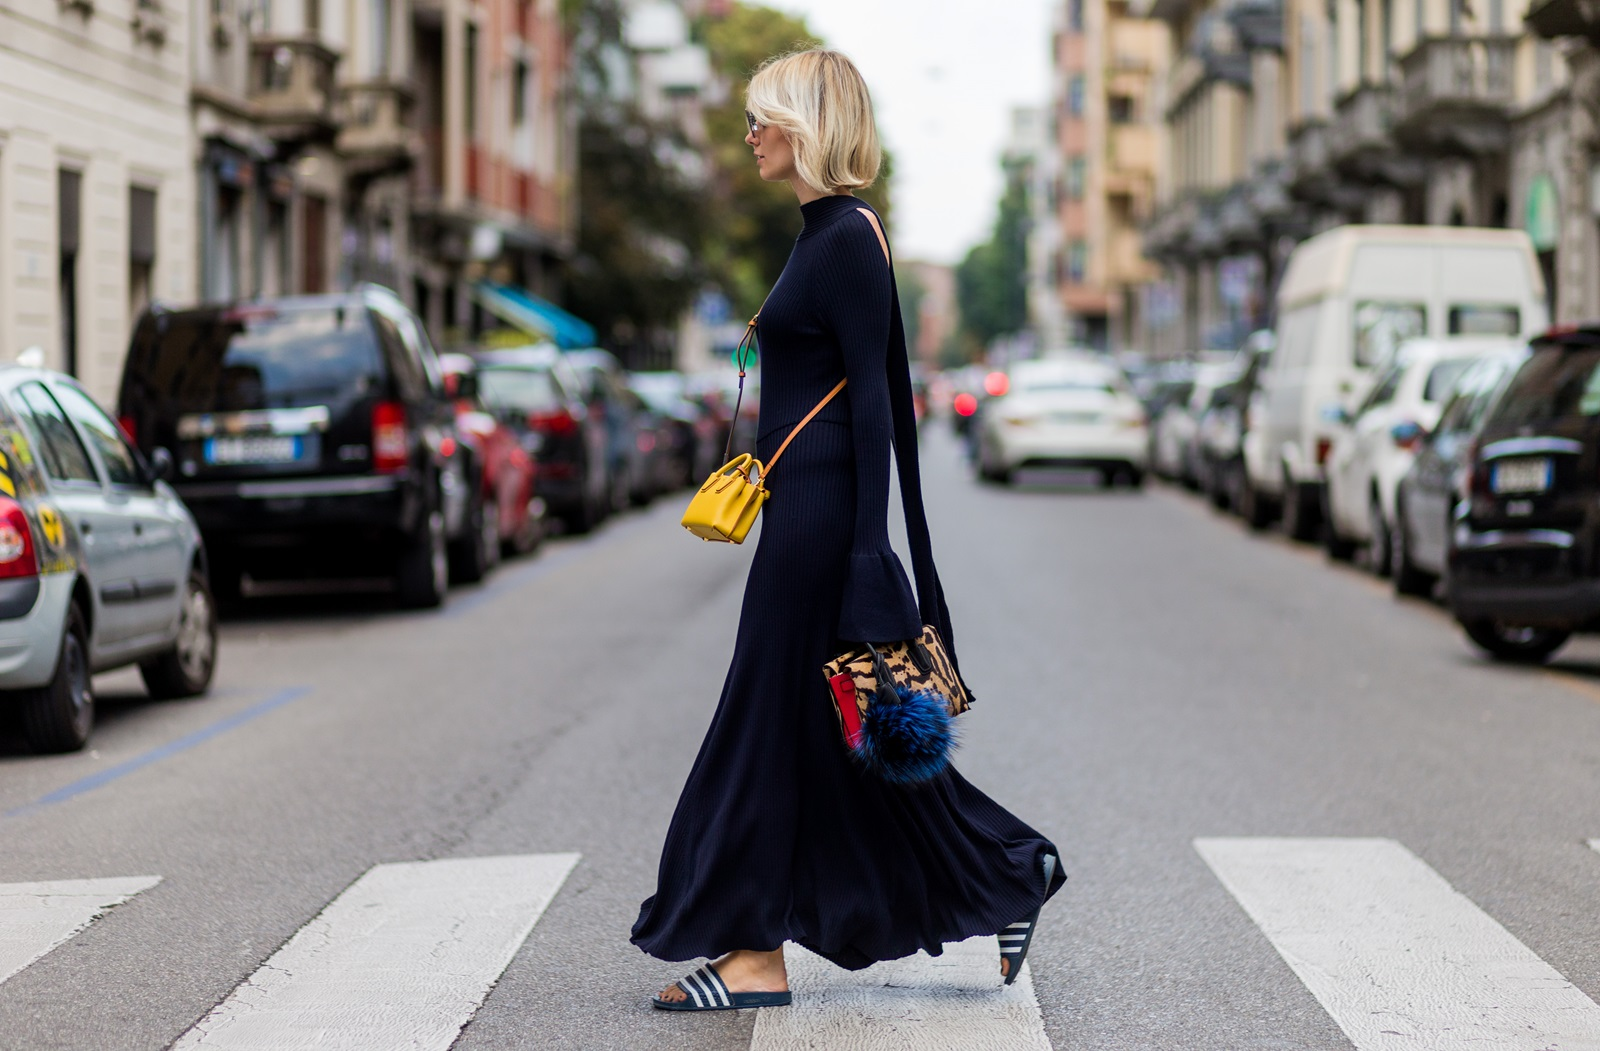 MILAN, ITALY - SEPTEMBER 21: Lisa Hahnbueck (@lisarvd) wearing a backless Knitdress with big sleeves H&M Trend, Milla Gepard Tote Mini + Milla Micro Bag / X-Mini, adiletten, Fendi sunglasses is seen outside Alberta Ferretti during Milan Fashion Week Spring/Summer 2017 on September 21, 2016 in Milan, Italy. (Photo by Christian Vierig/Getty Images) *** Local Caption *** Lisa Hahnbueck